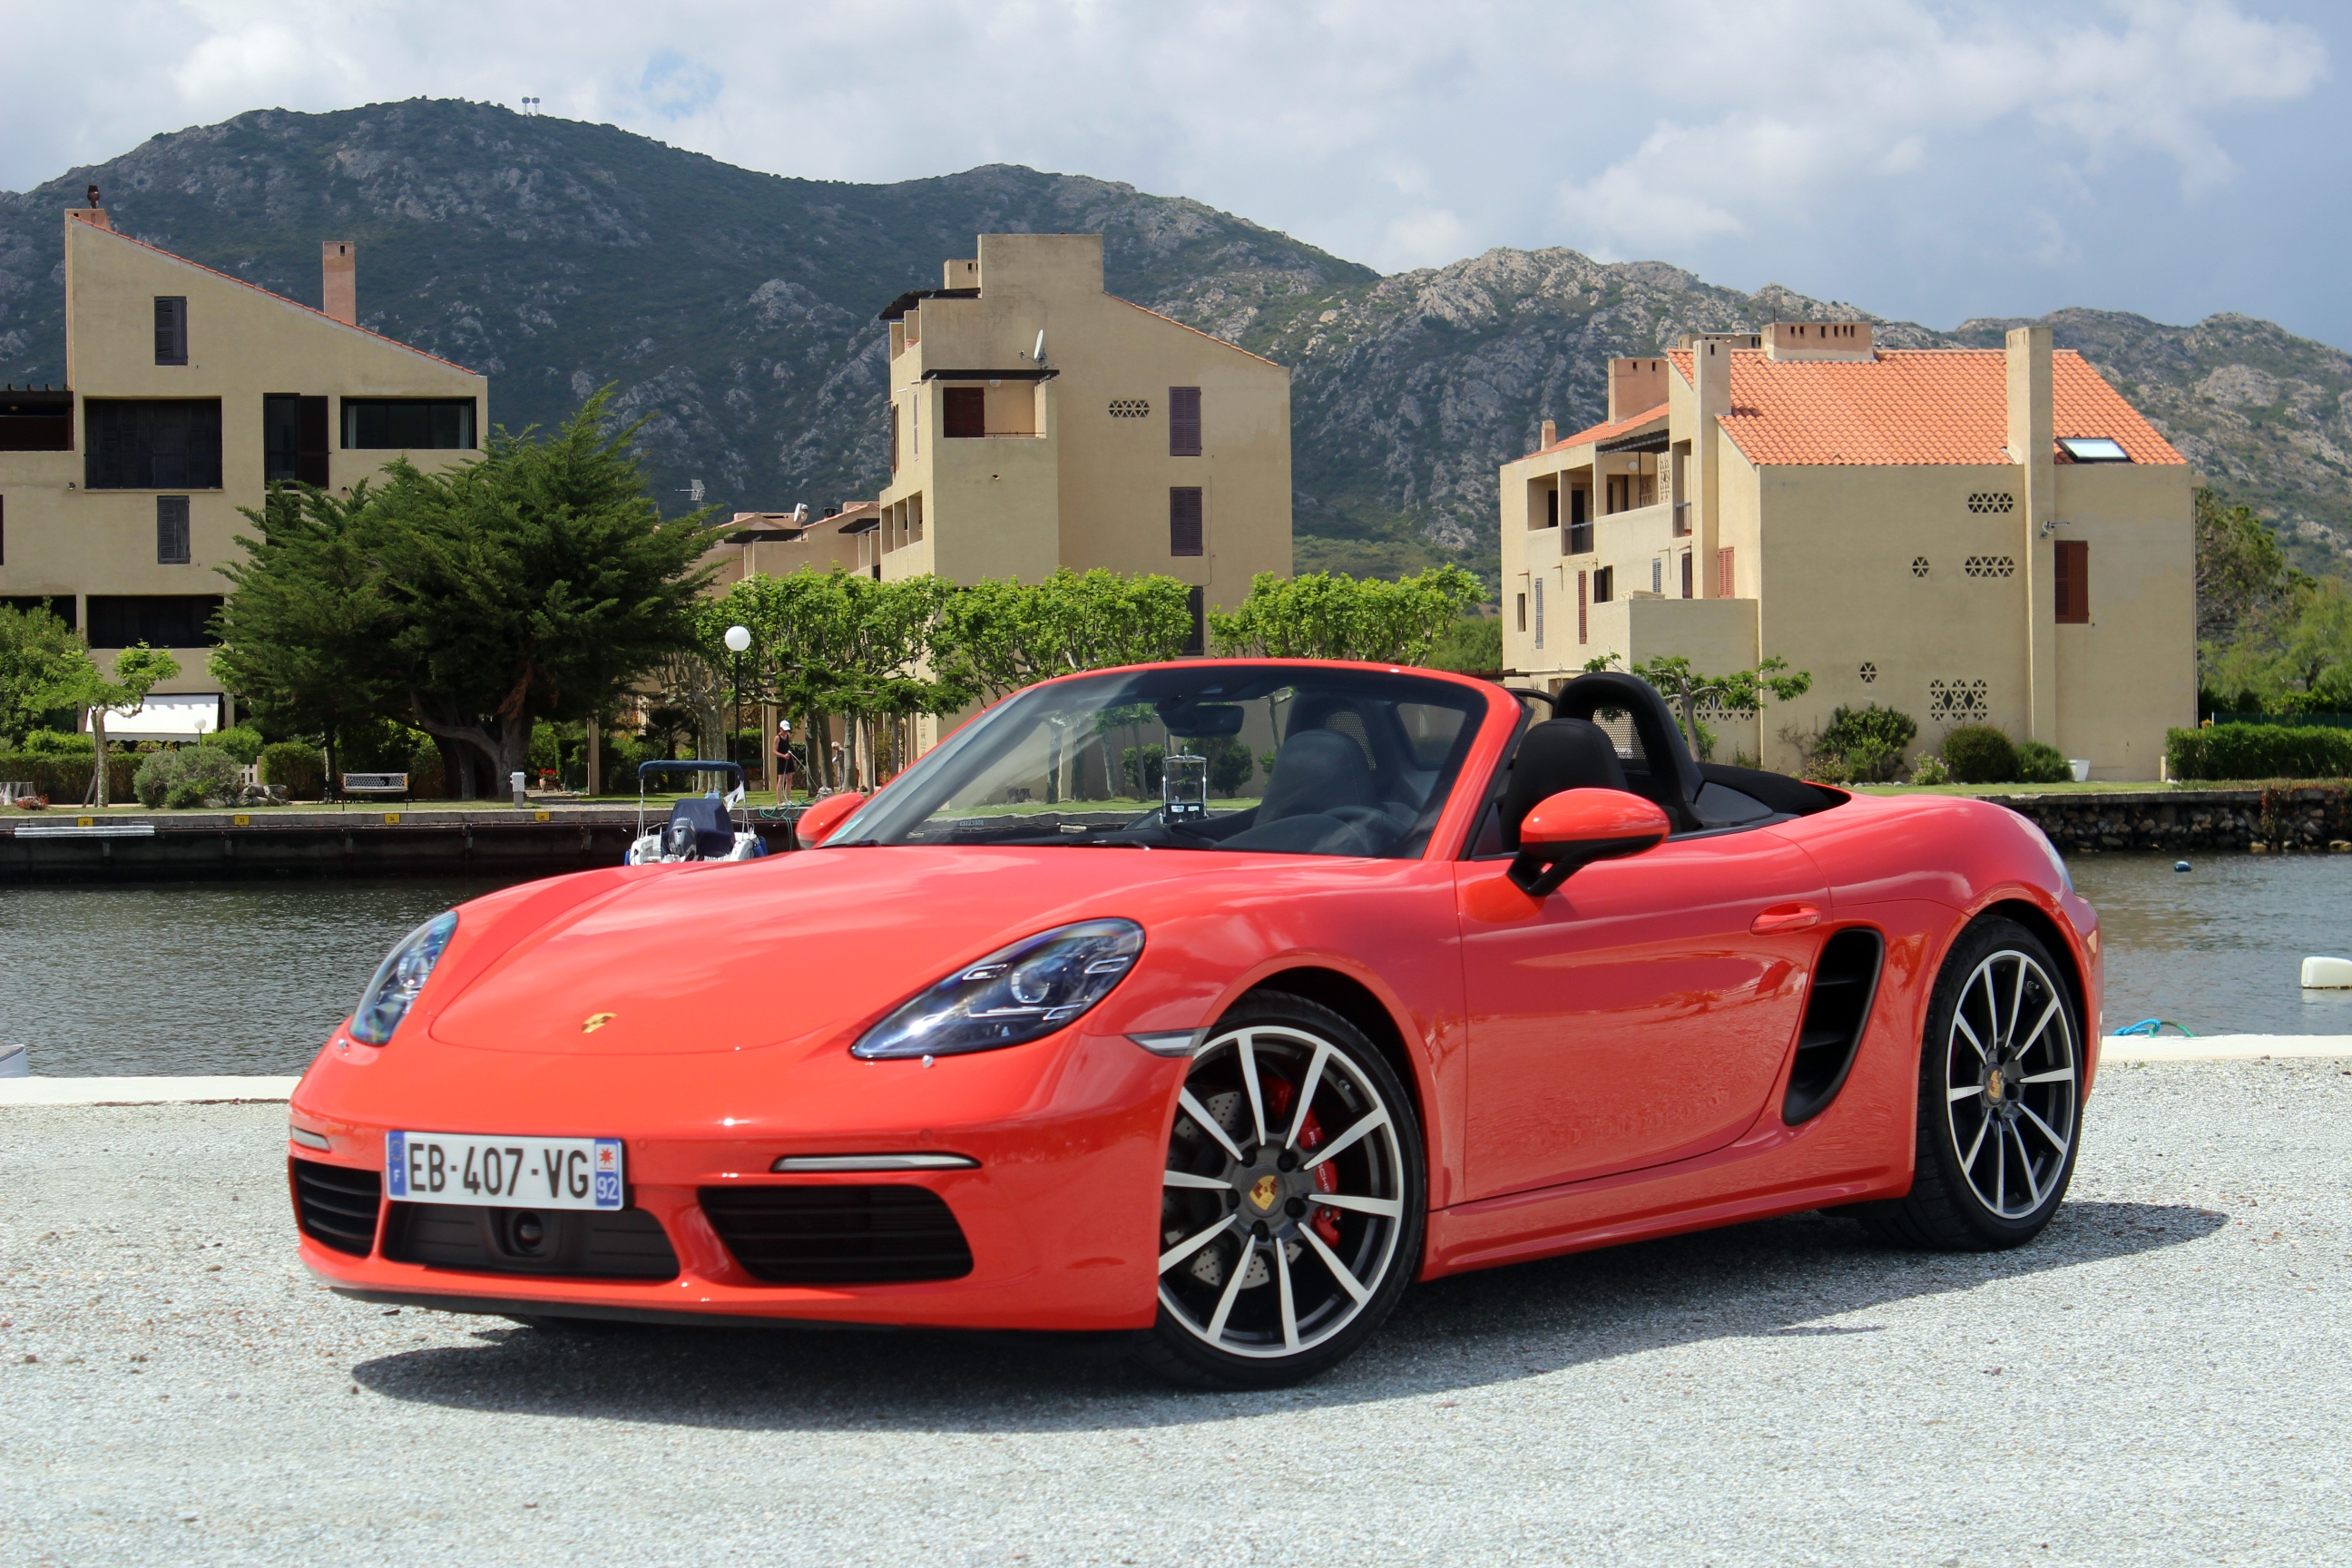 essai vid o porsche boxster 718 se mettre en 4. Black Bedroom Furniture Sets. Home Design Ideas